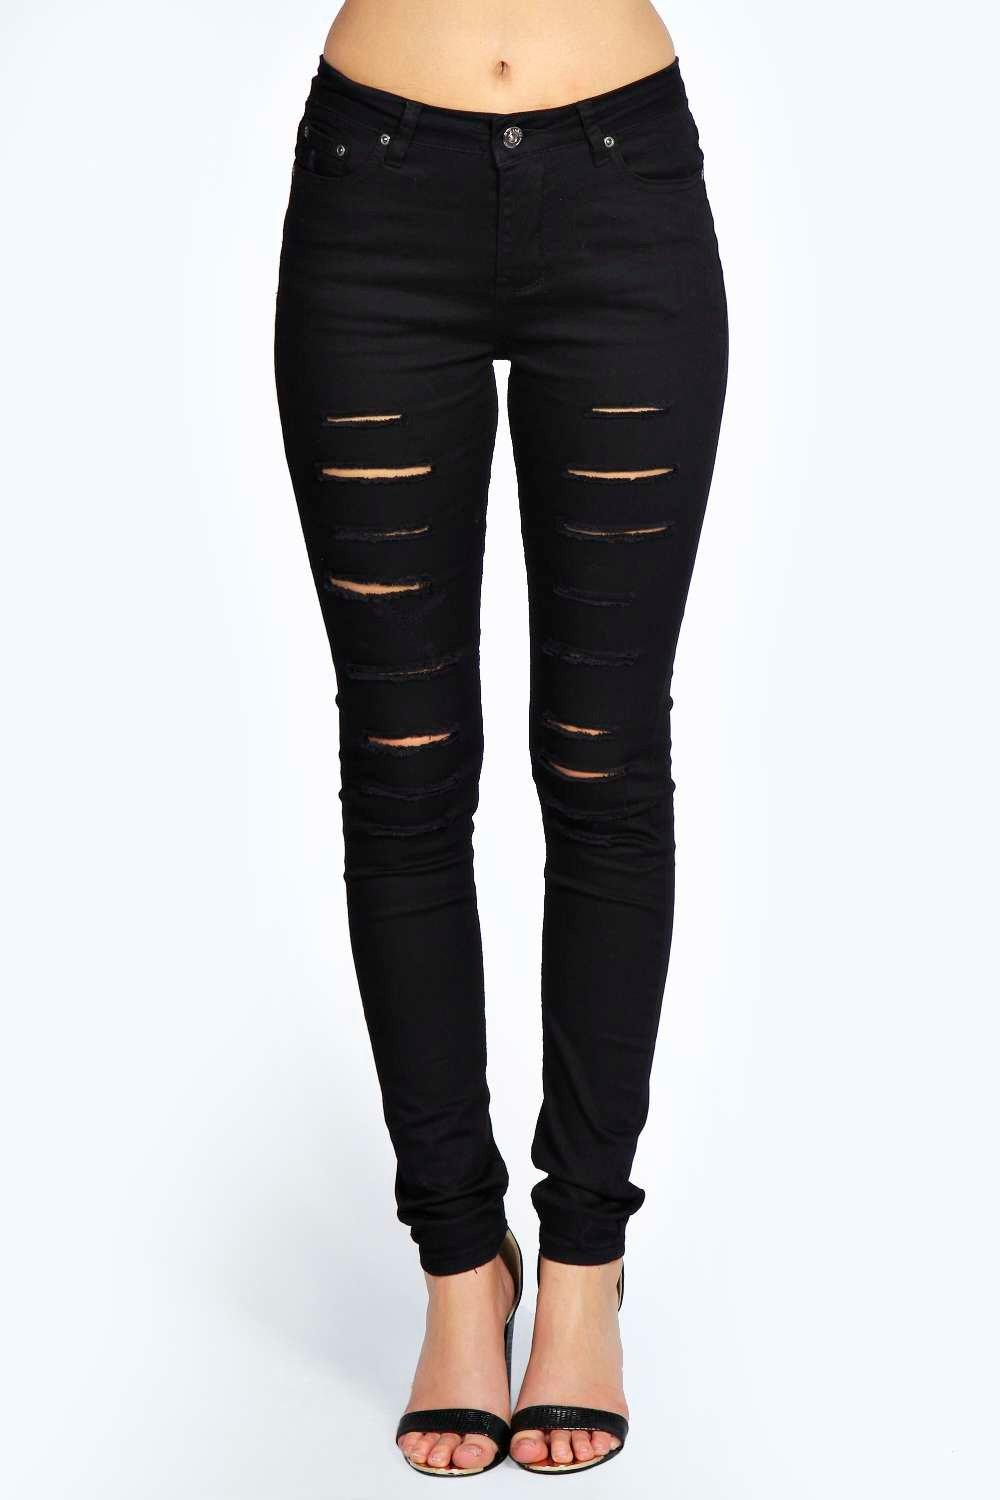 Laura Ripped Knee Black Skinny Jeans at boohoo.com